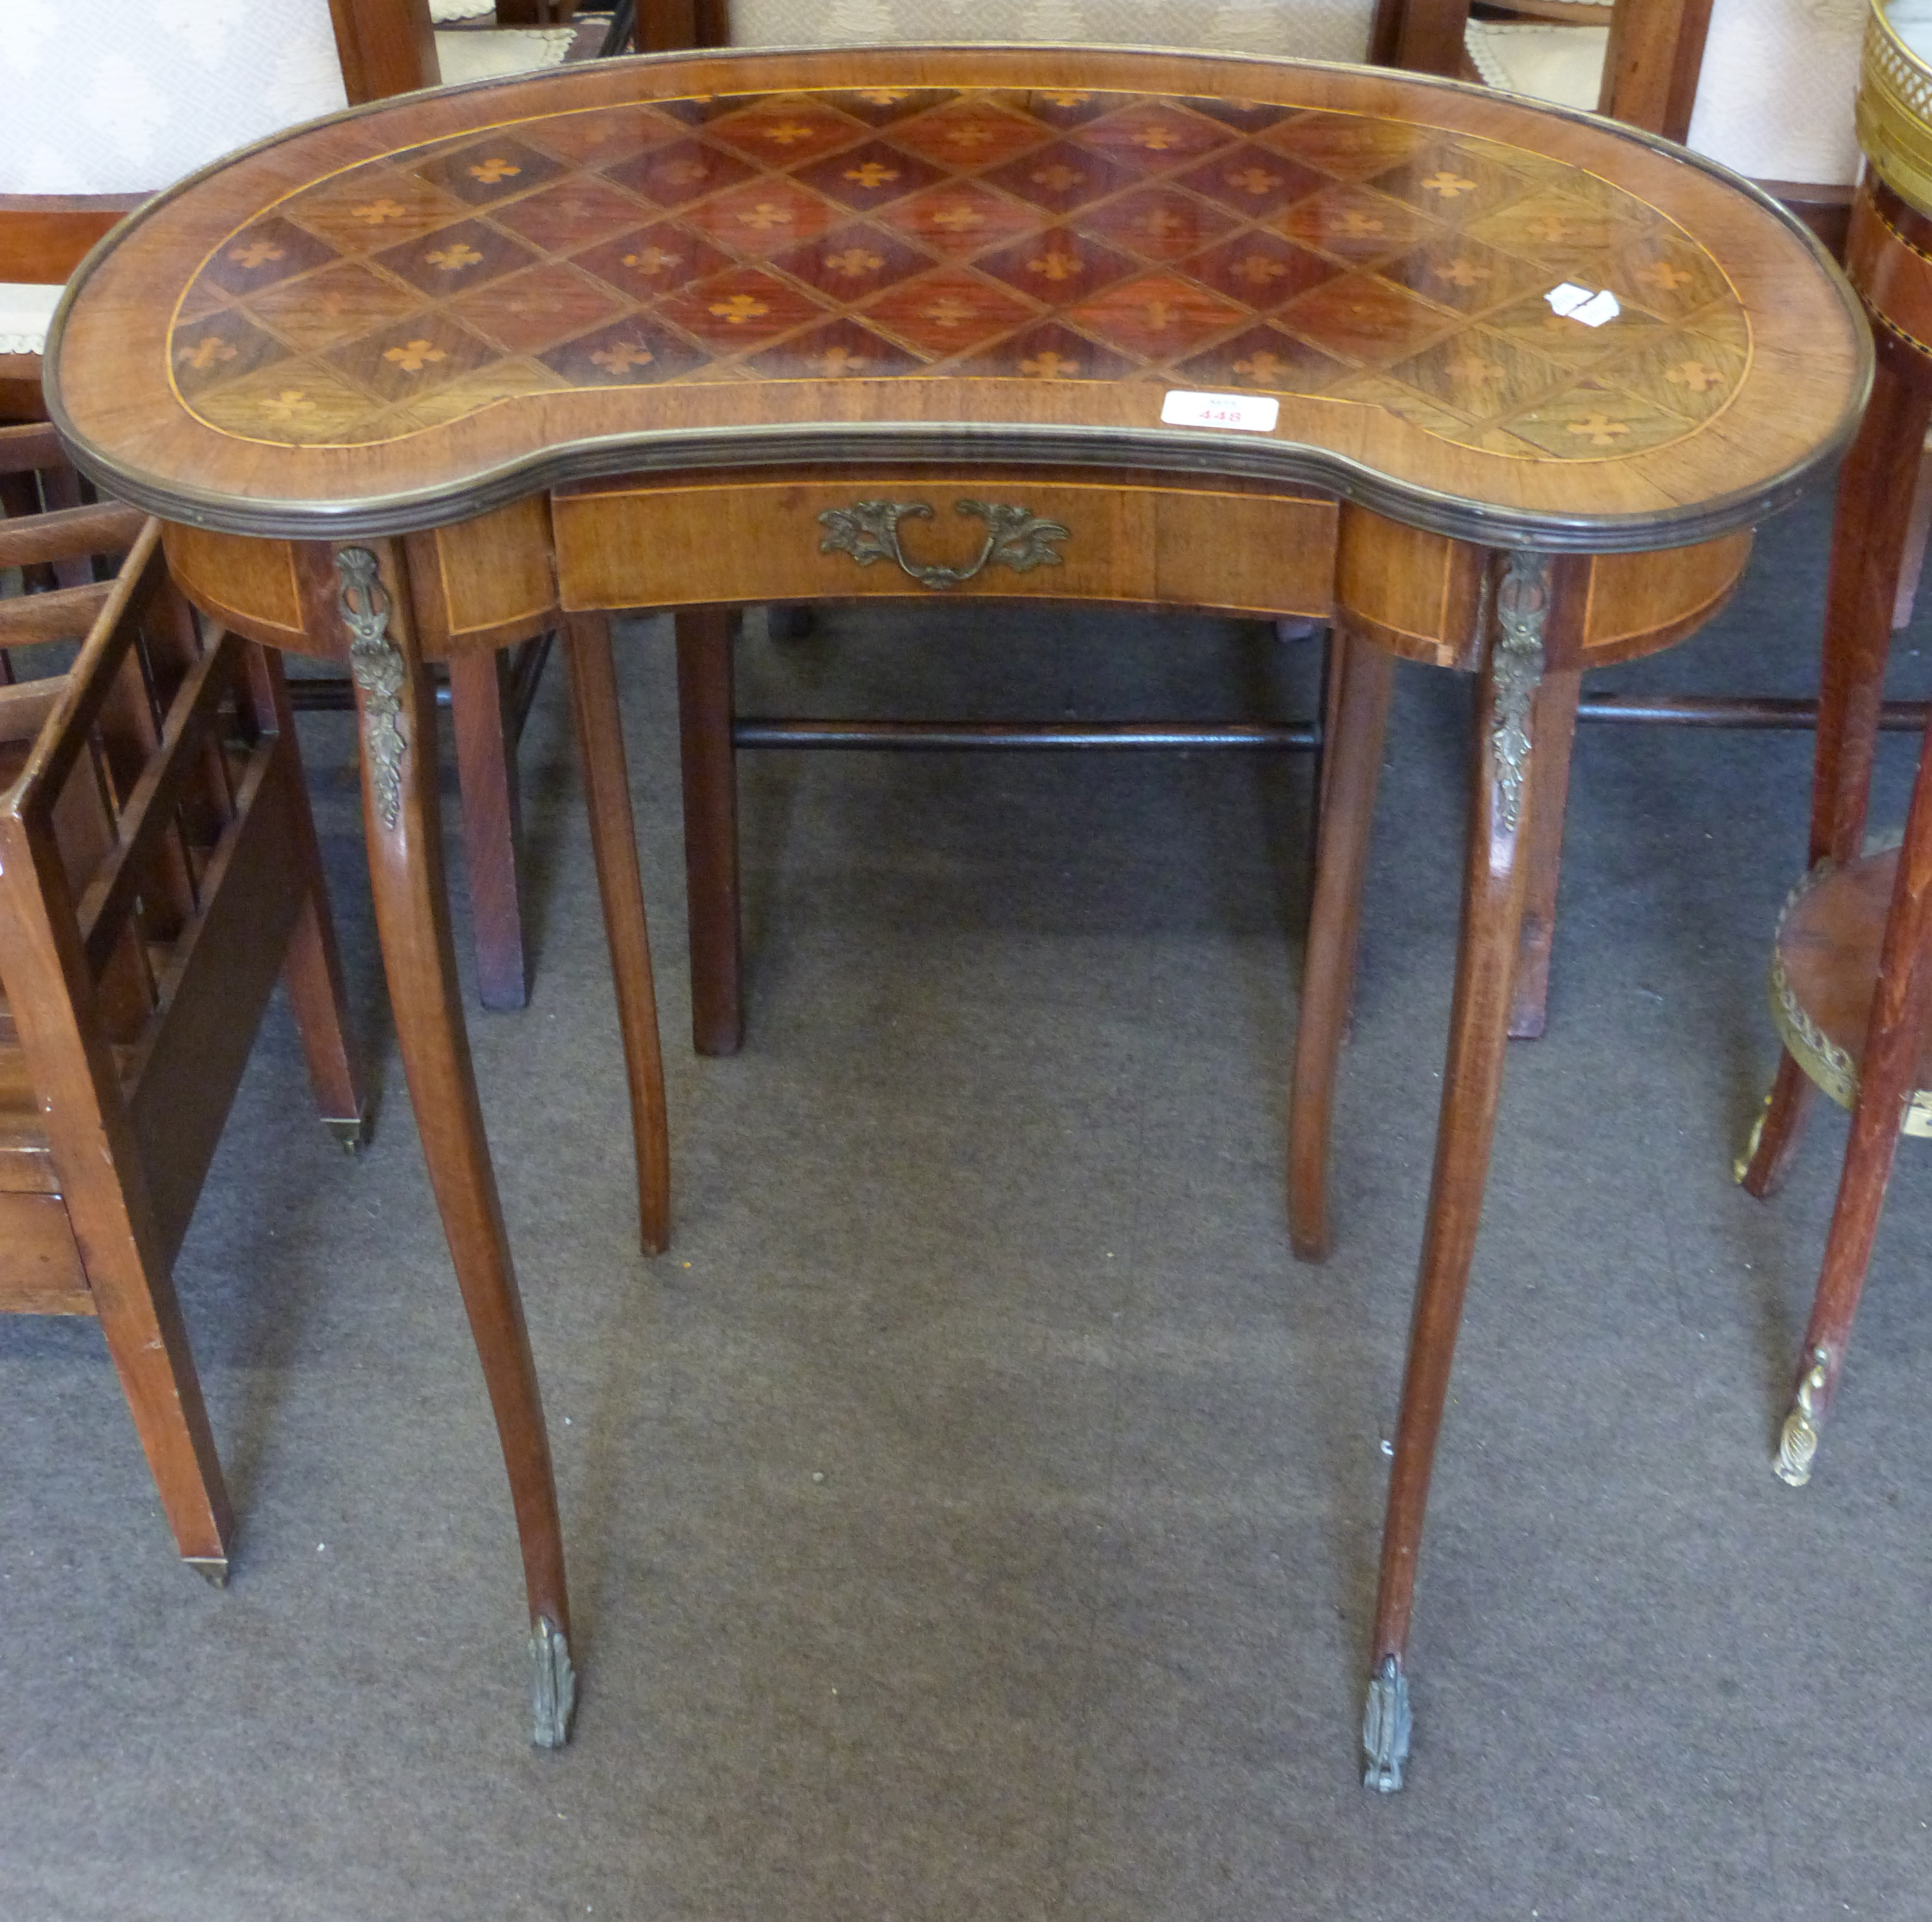 Small kidney shaped side table with drawer beneath and inlaid decoration, height approx 69cm